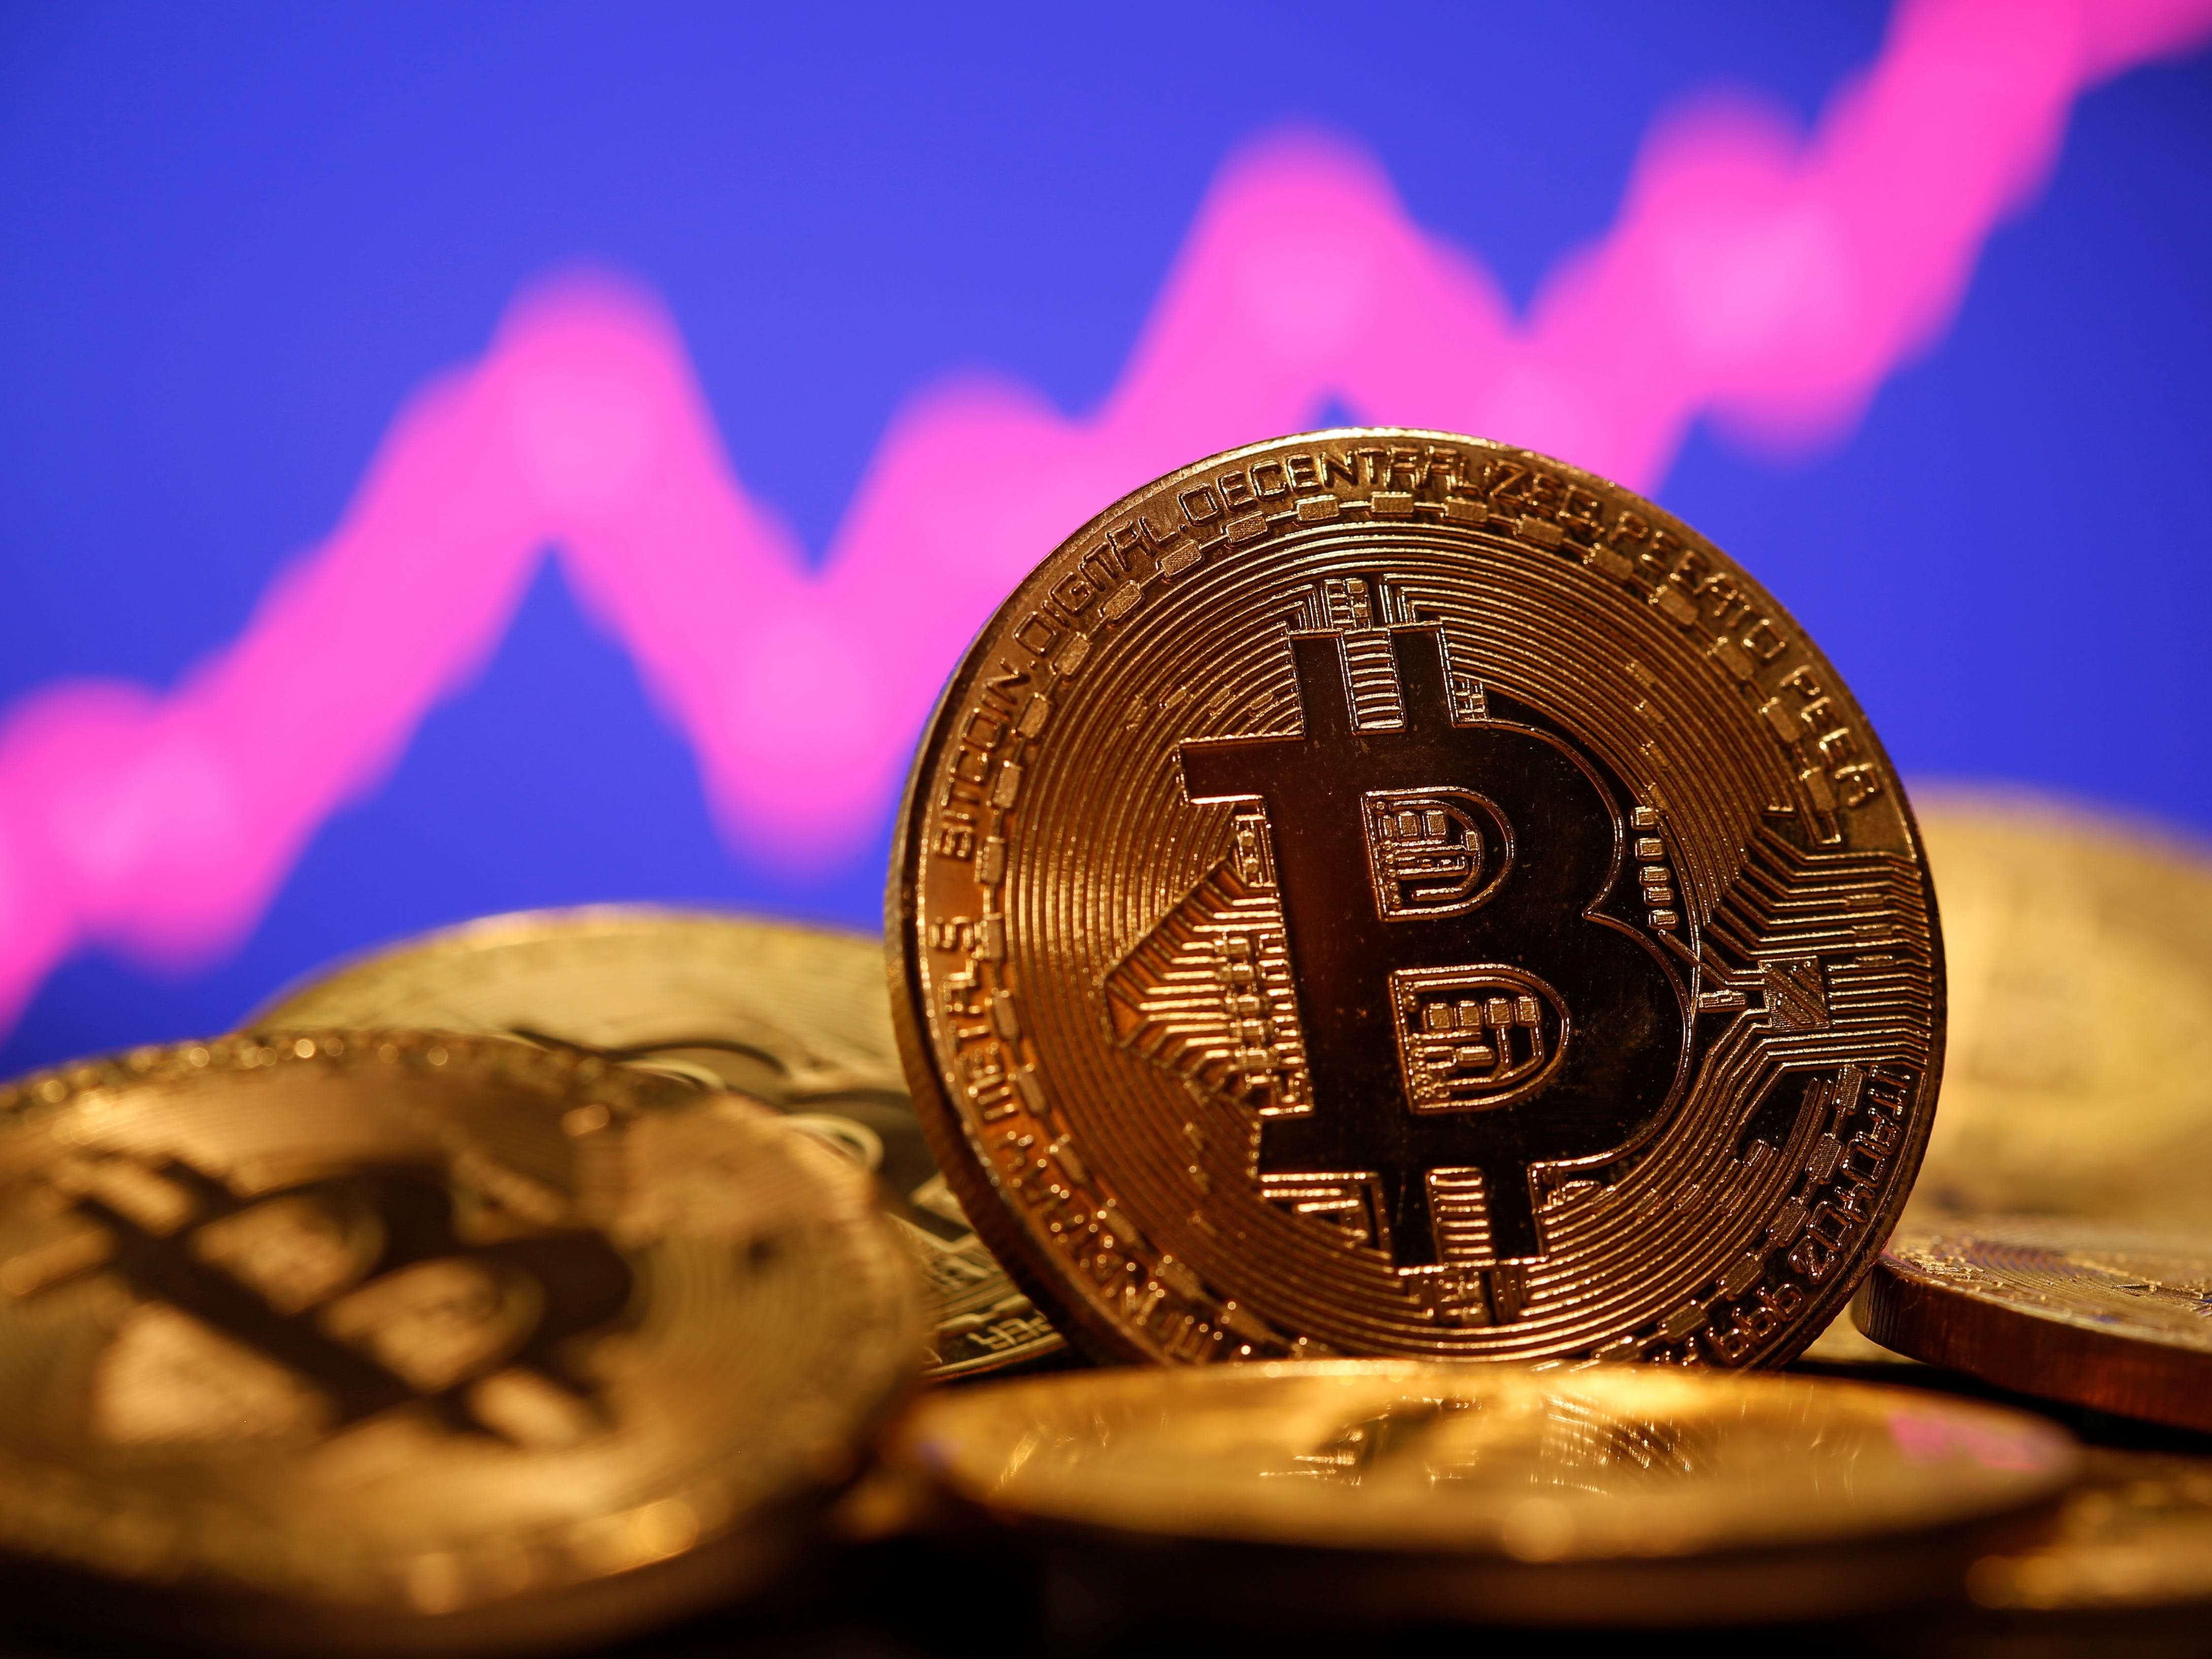 Cryptocurrency Investors Could Lose All Their Money Uk Regulator Warns As Bitcoin Price Drops From All Time High Business Insider India